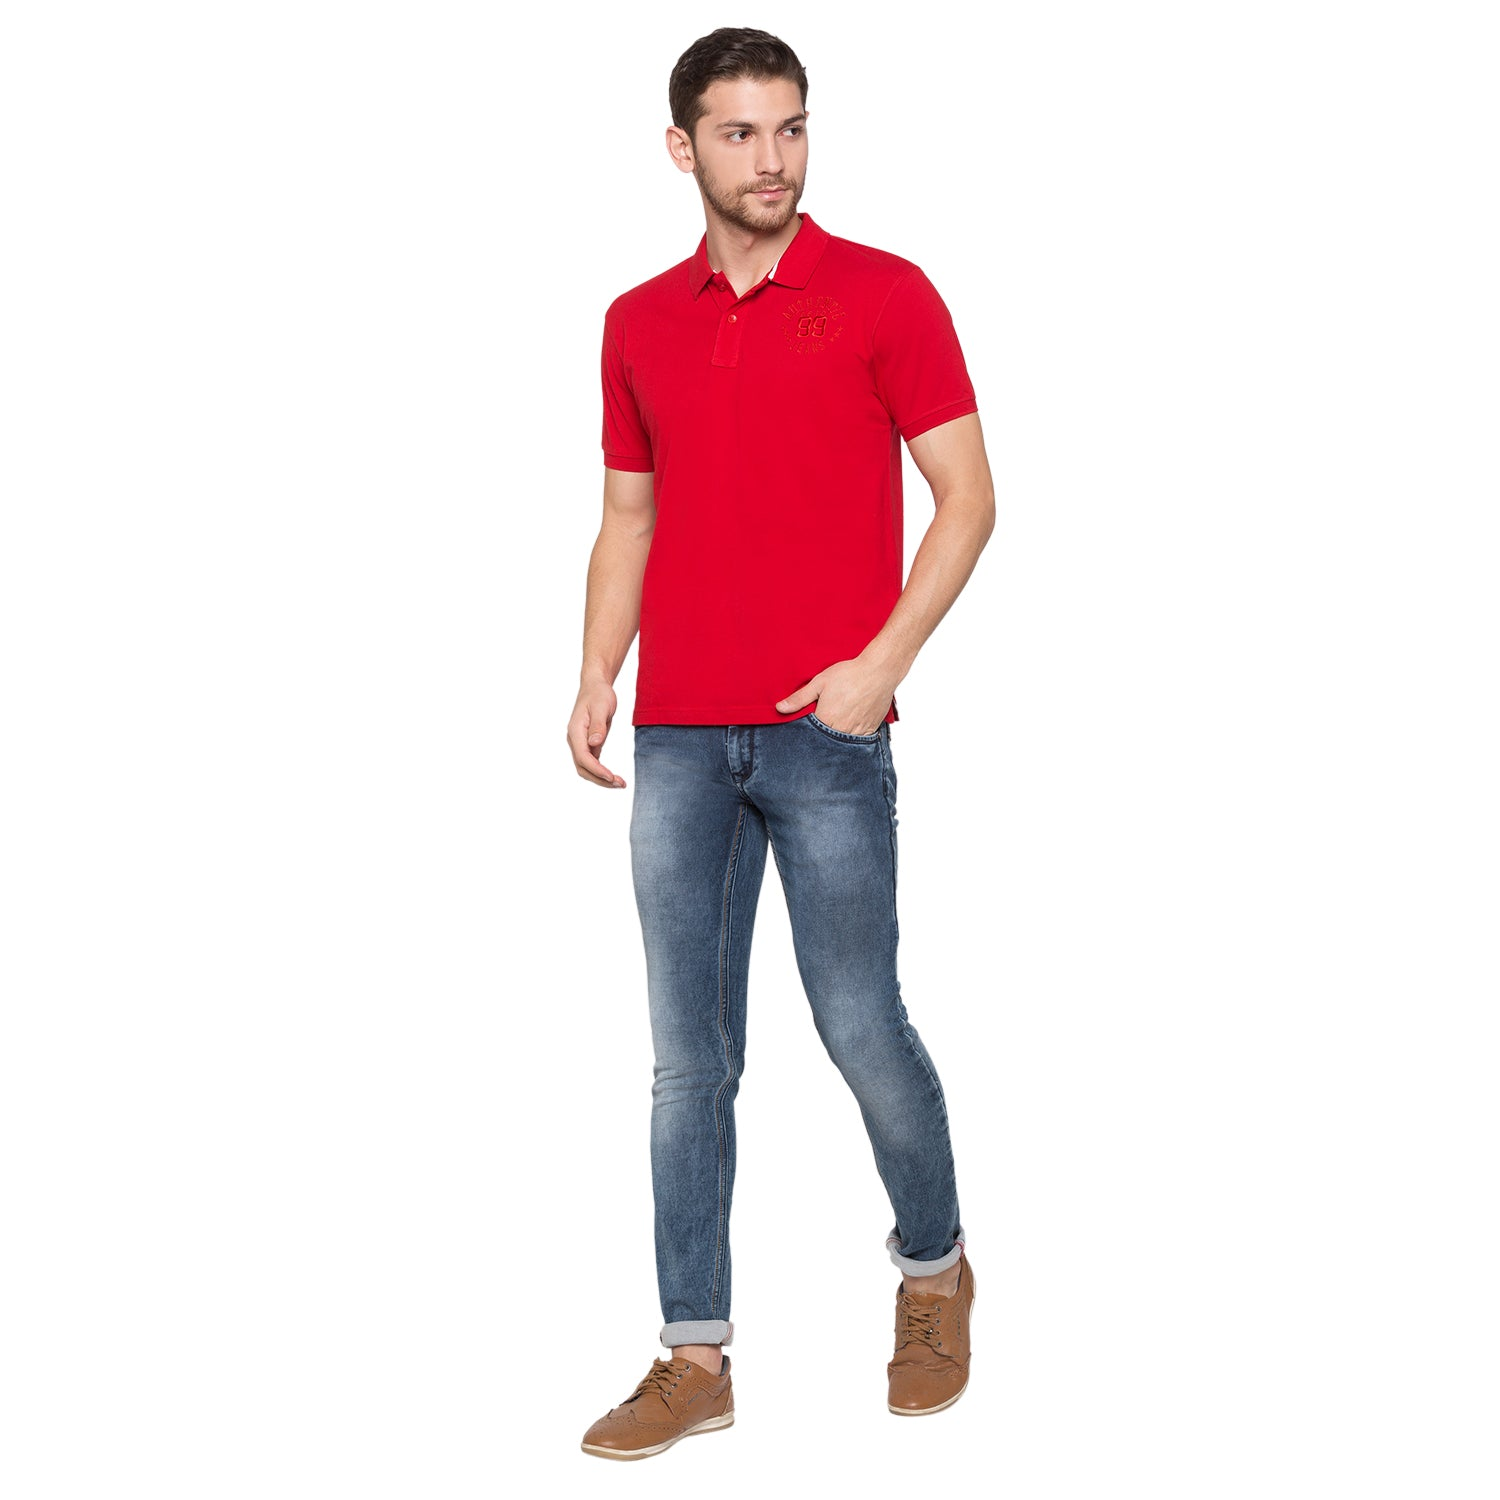 Globus Red Solid Polo T-Shirt4